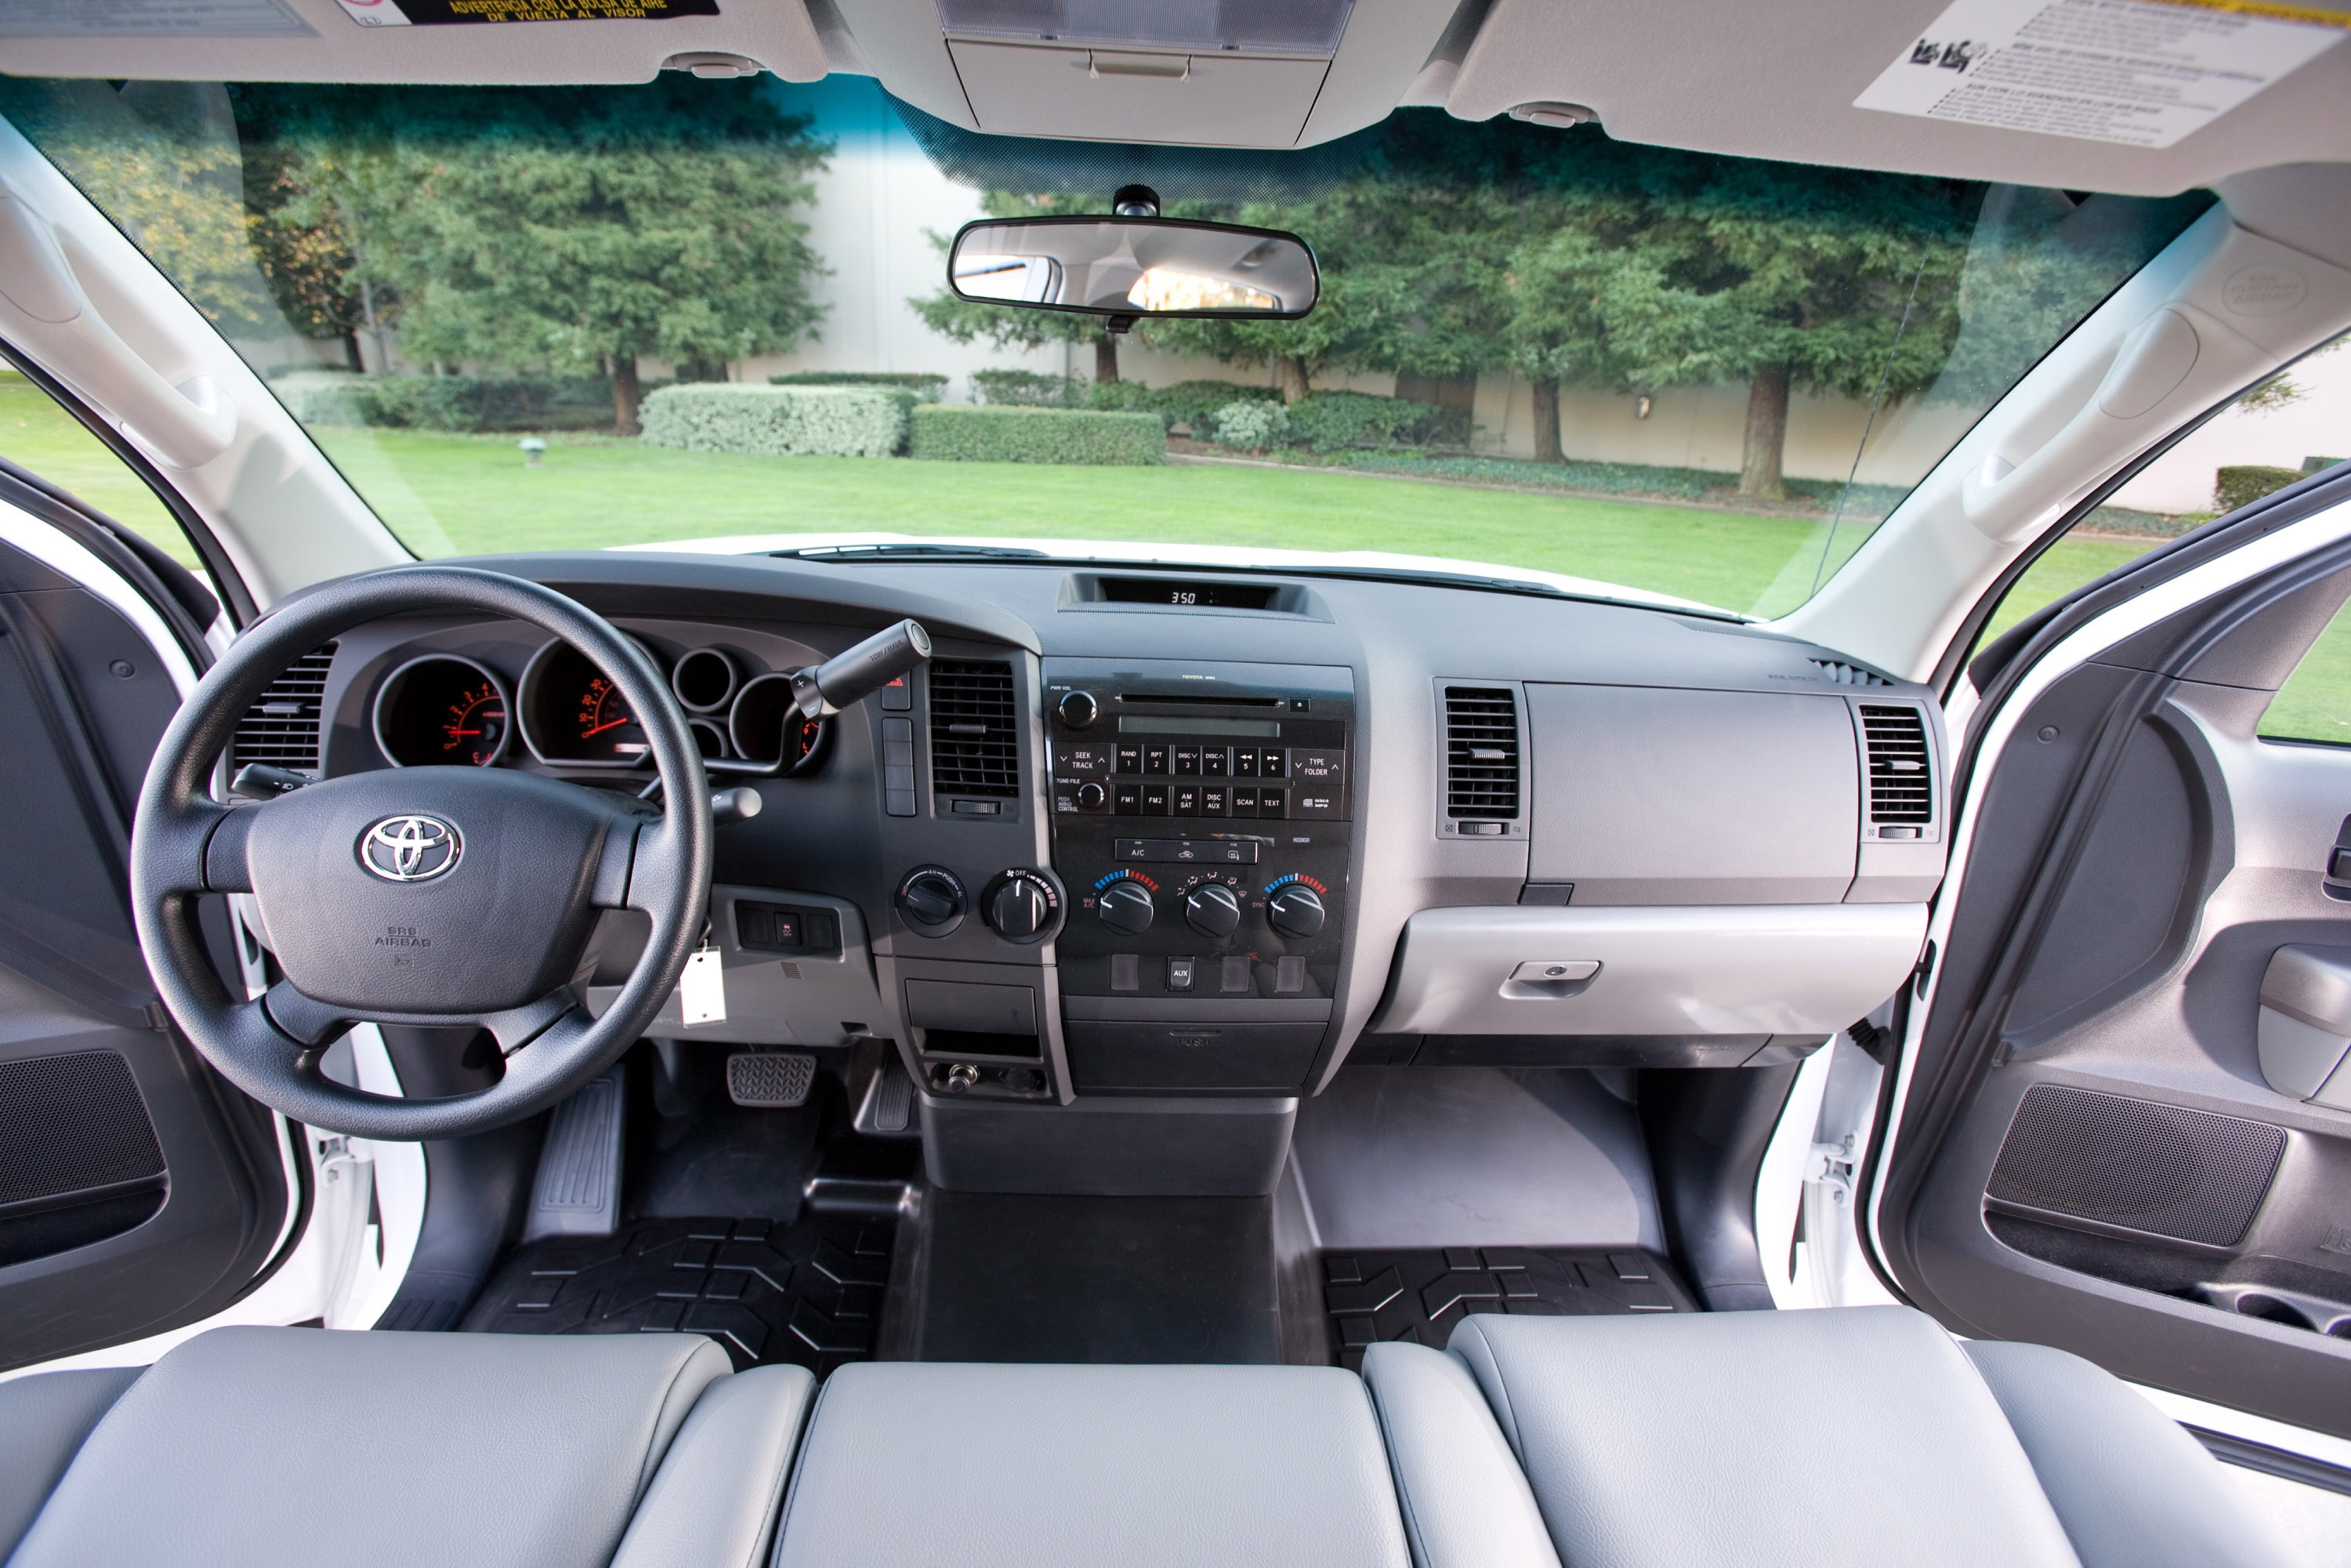 u s news see full 2012 toyota tundra review specs pictures and prices this